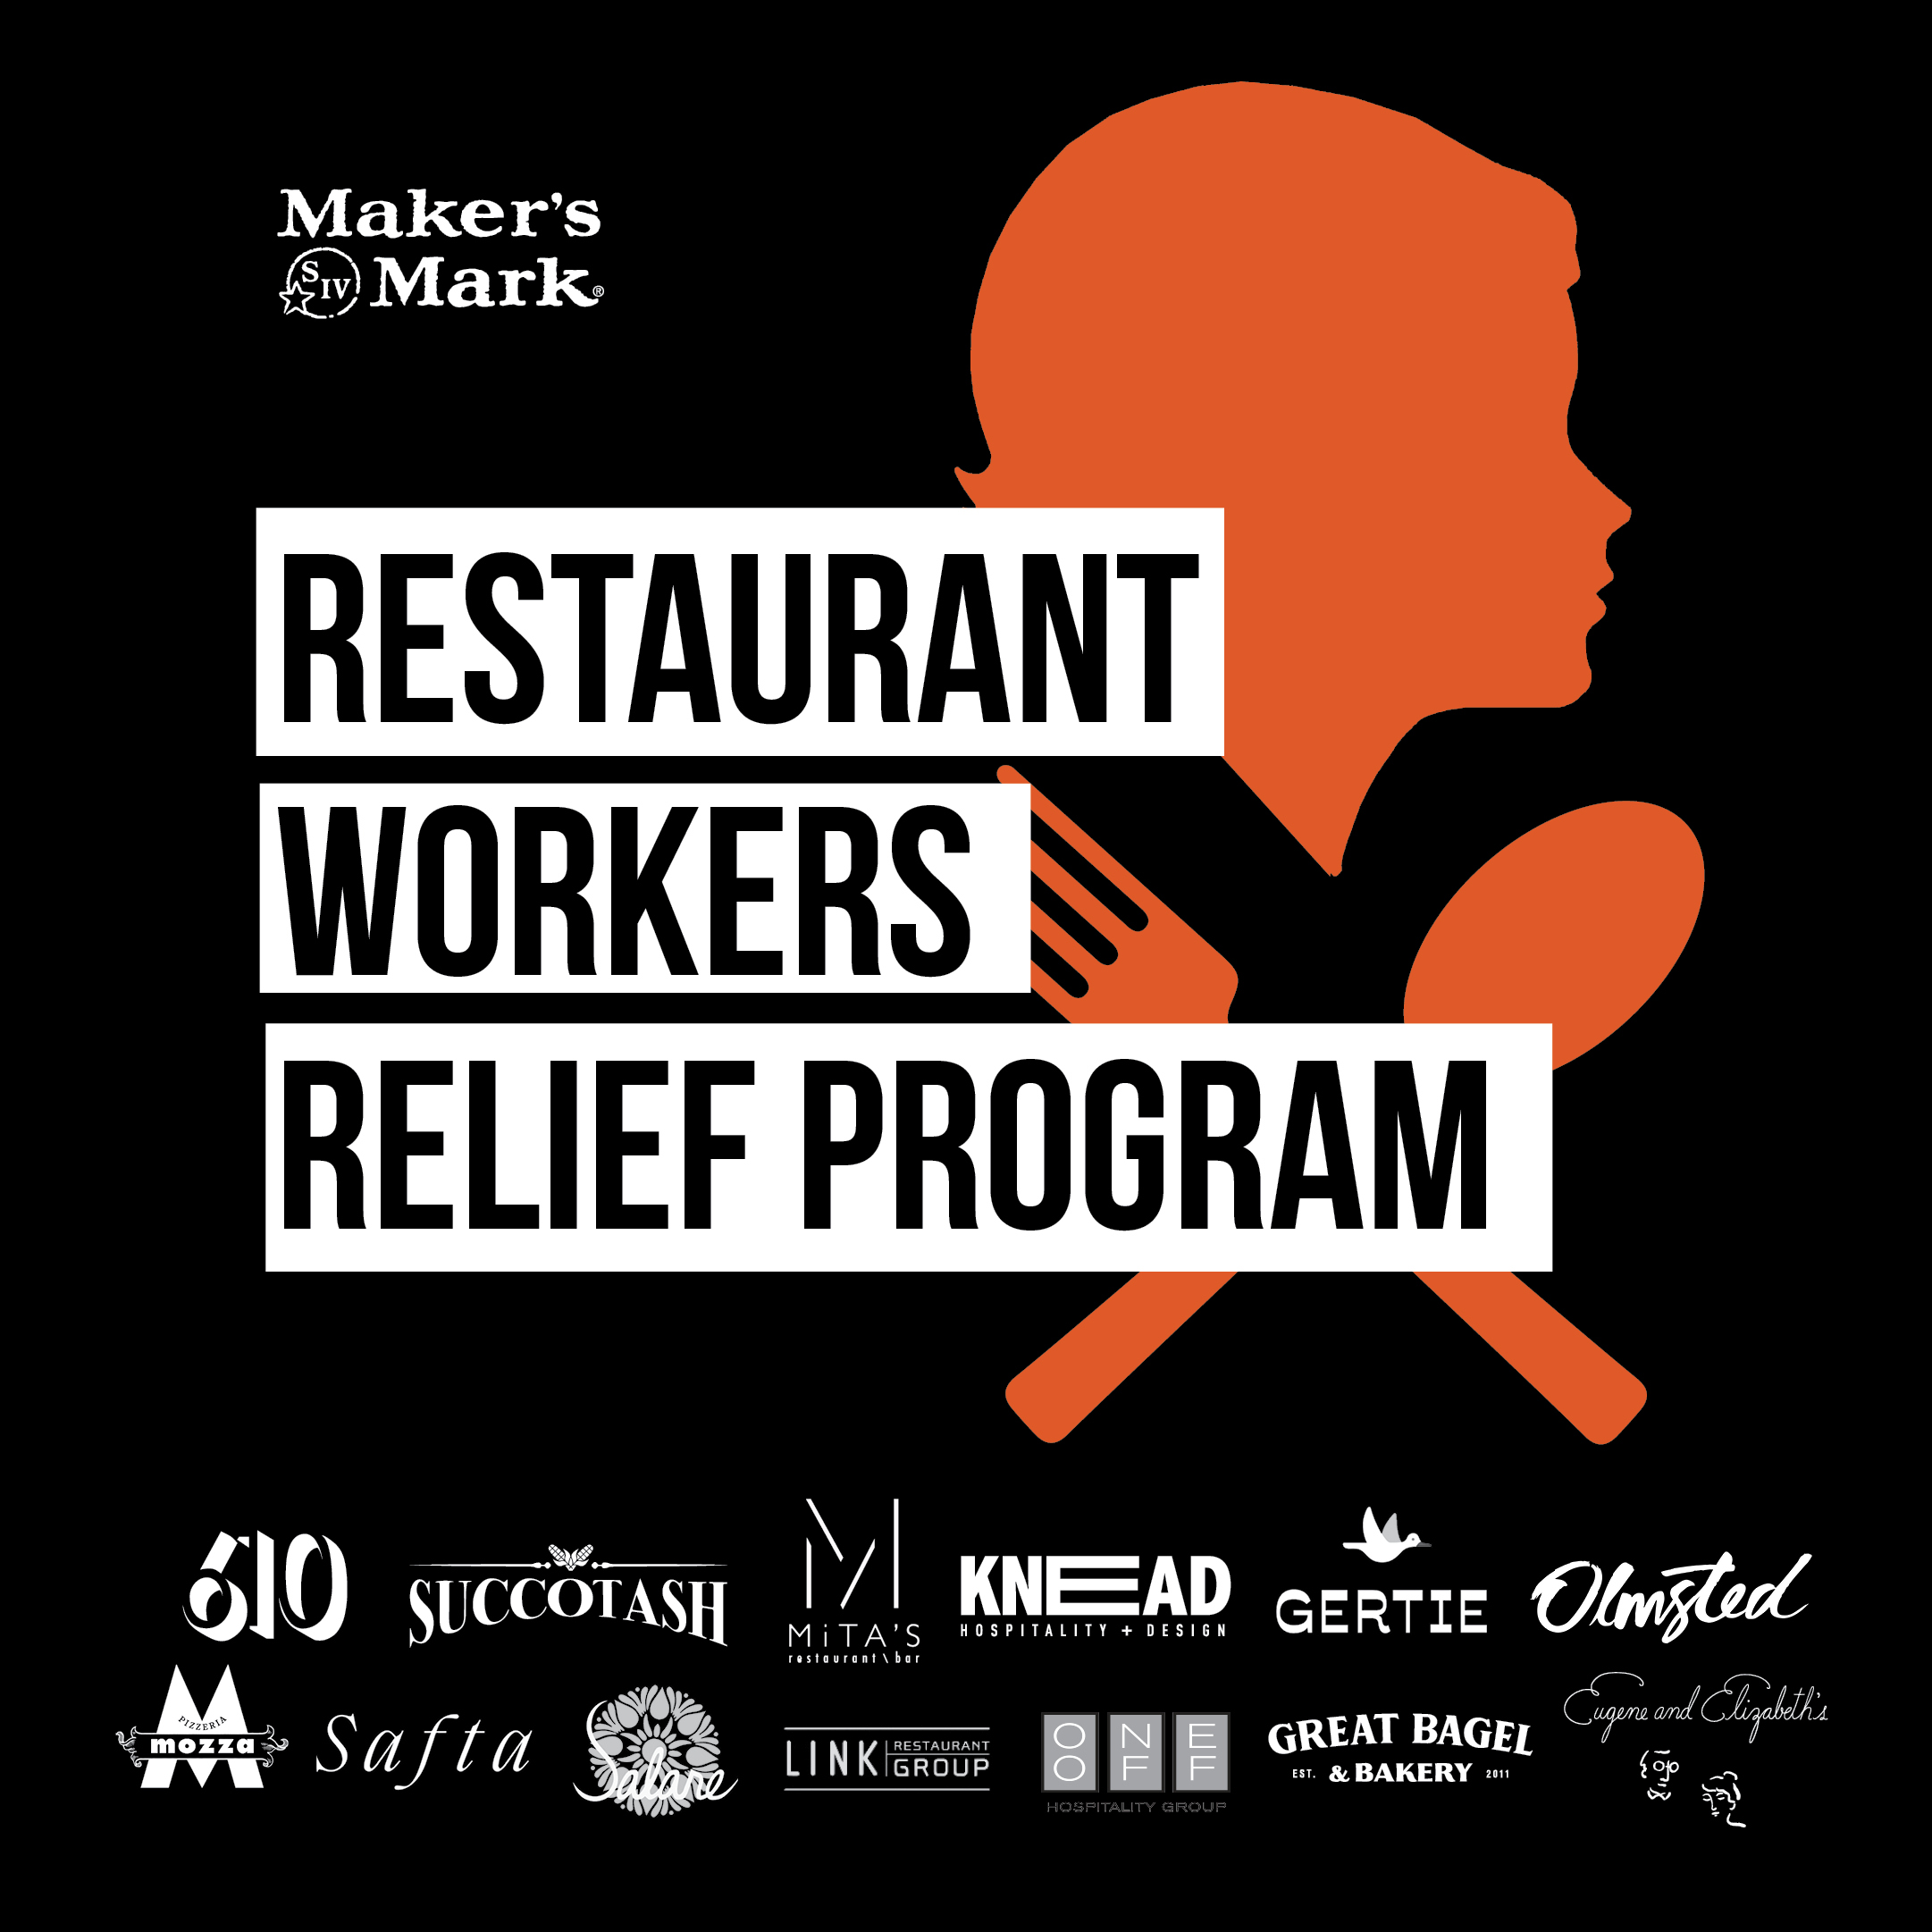 Lee Relief Graphic Image - THE LEE INITIATIVE'S RESTAURANT WORKERS RELIEF PROGRAM EXPANDS NATIONALLY